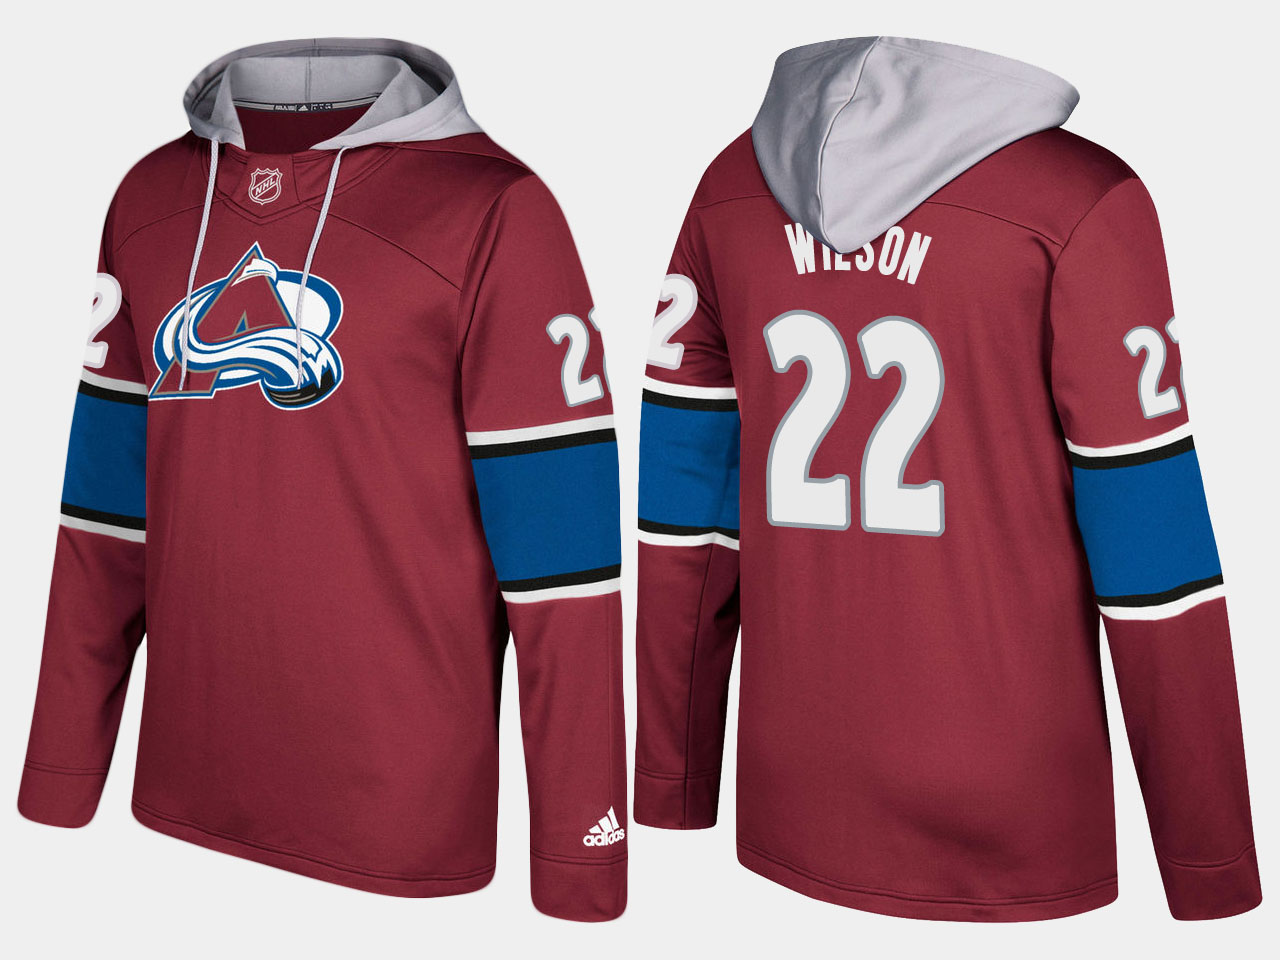 Men NHL Colorado avalanche 22 colin wilson burgundy hoodie